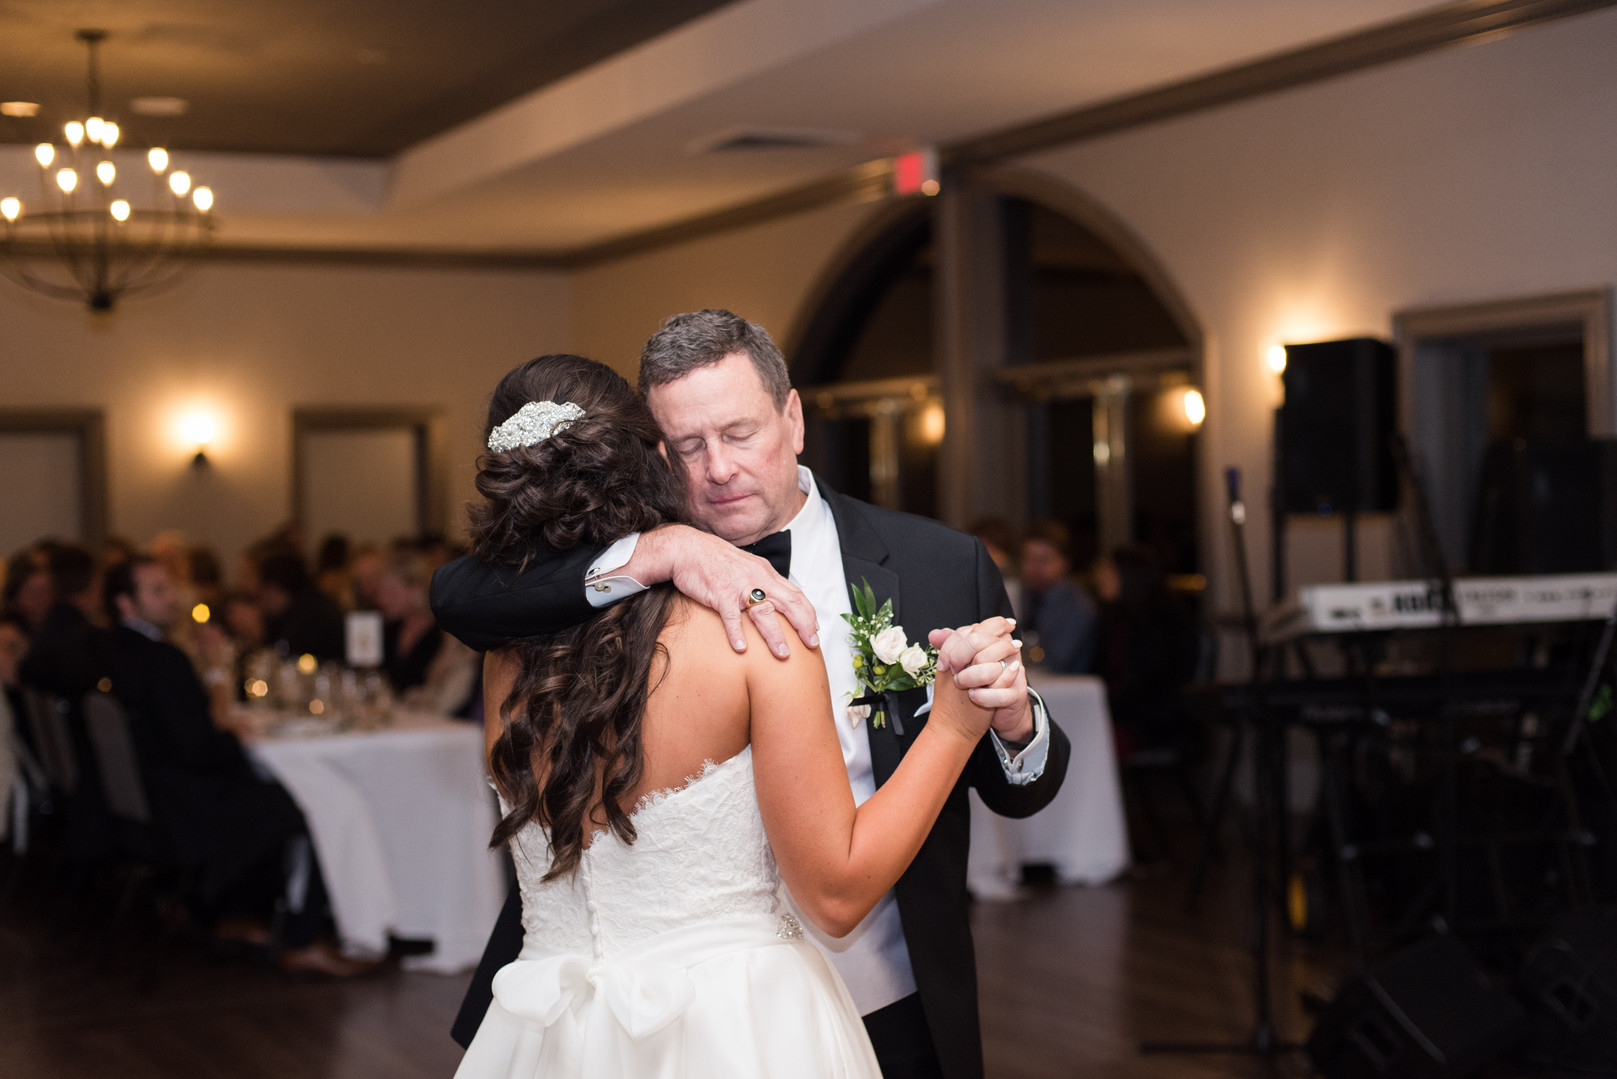 St. Louis Wedding Photographer & St. Louis Wedding Videographer